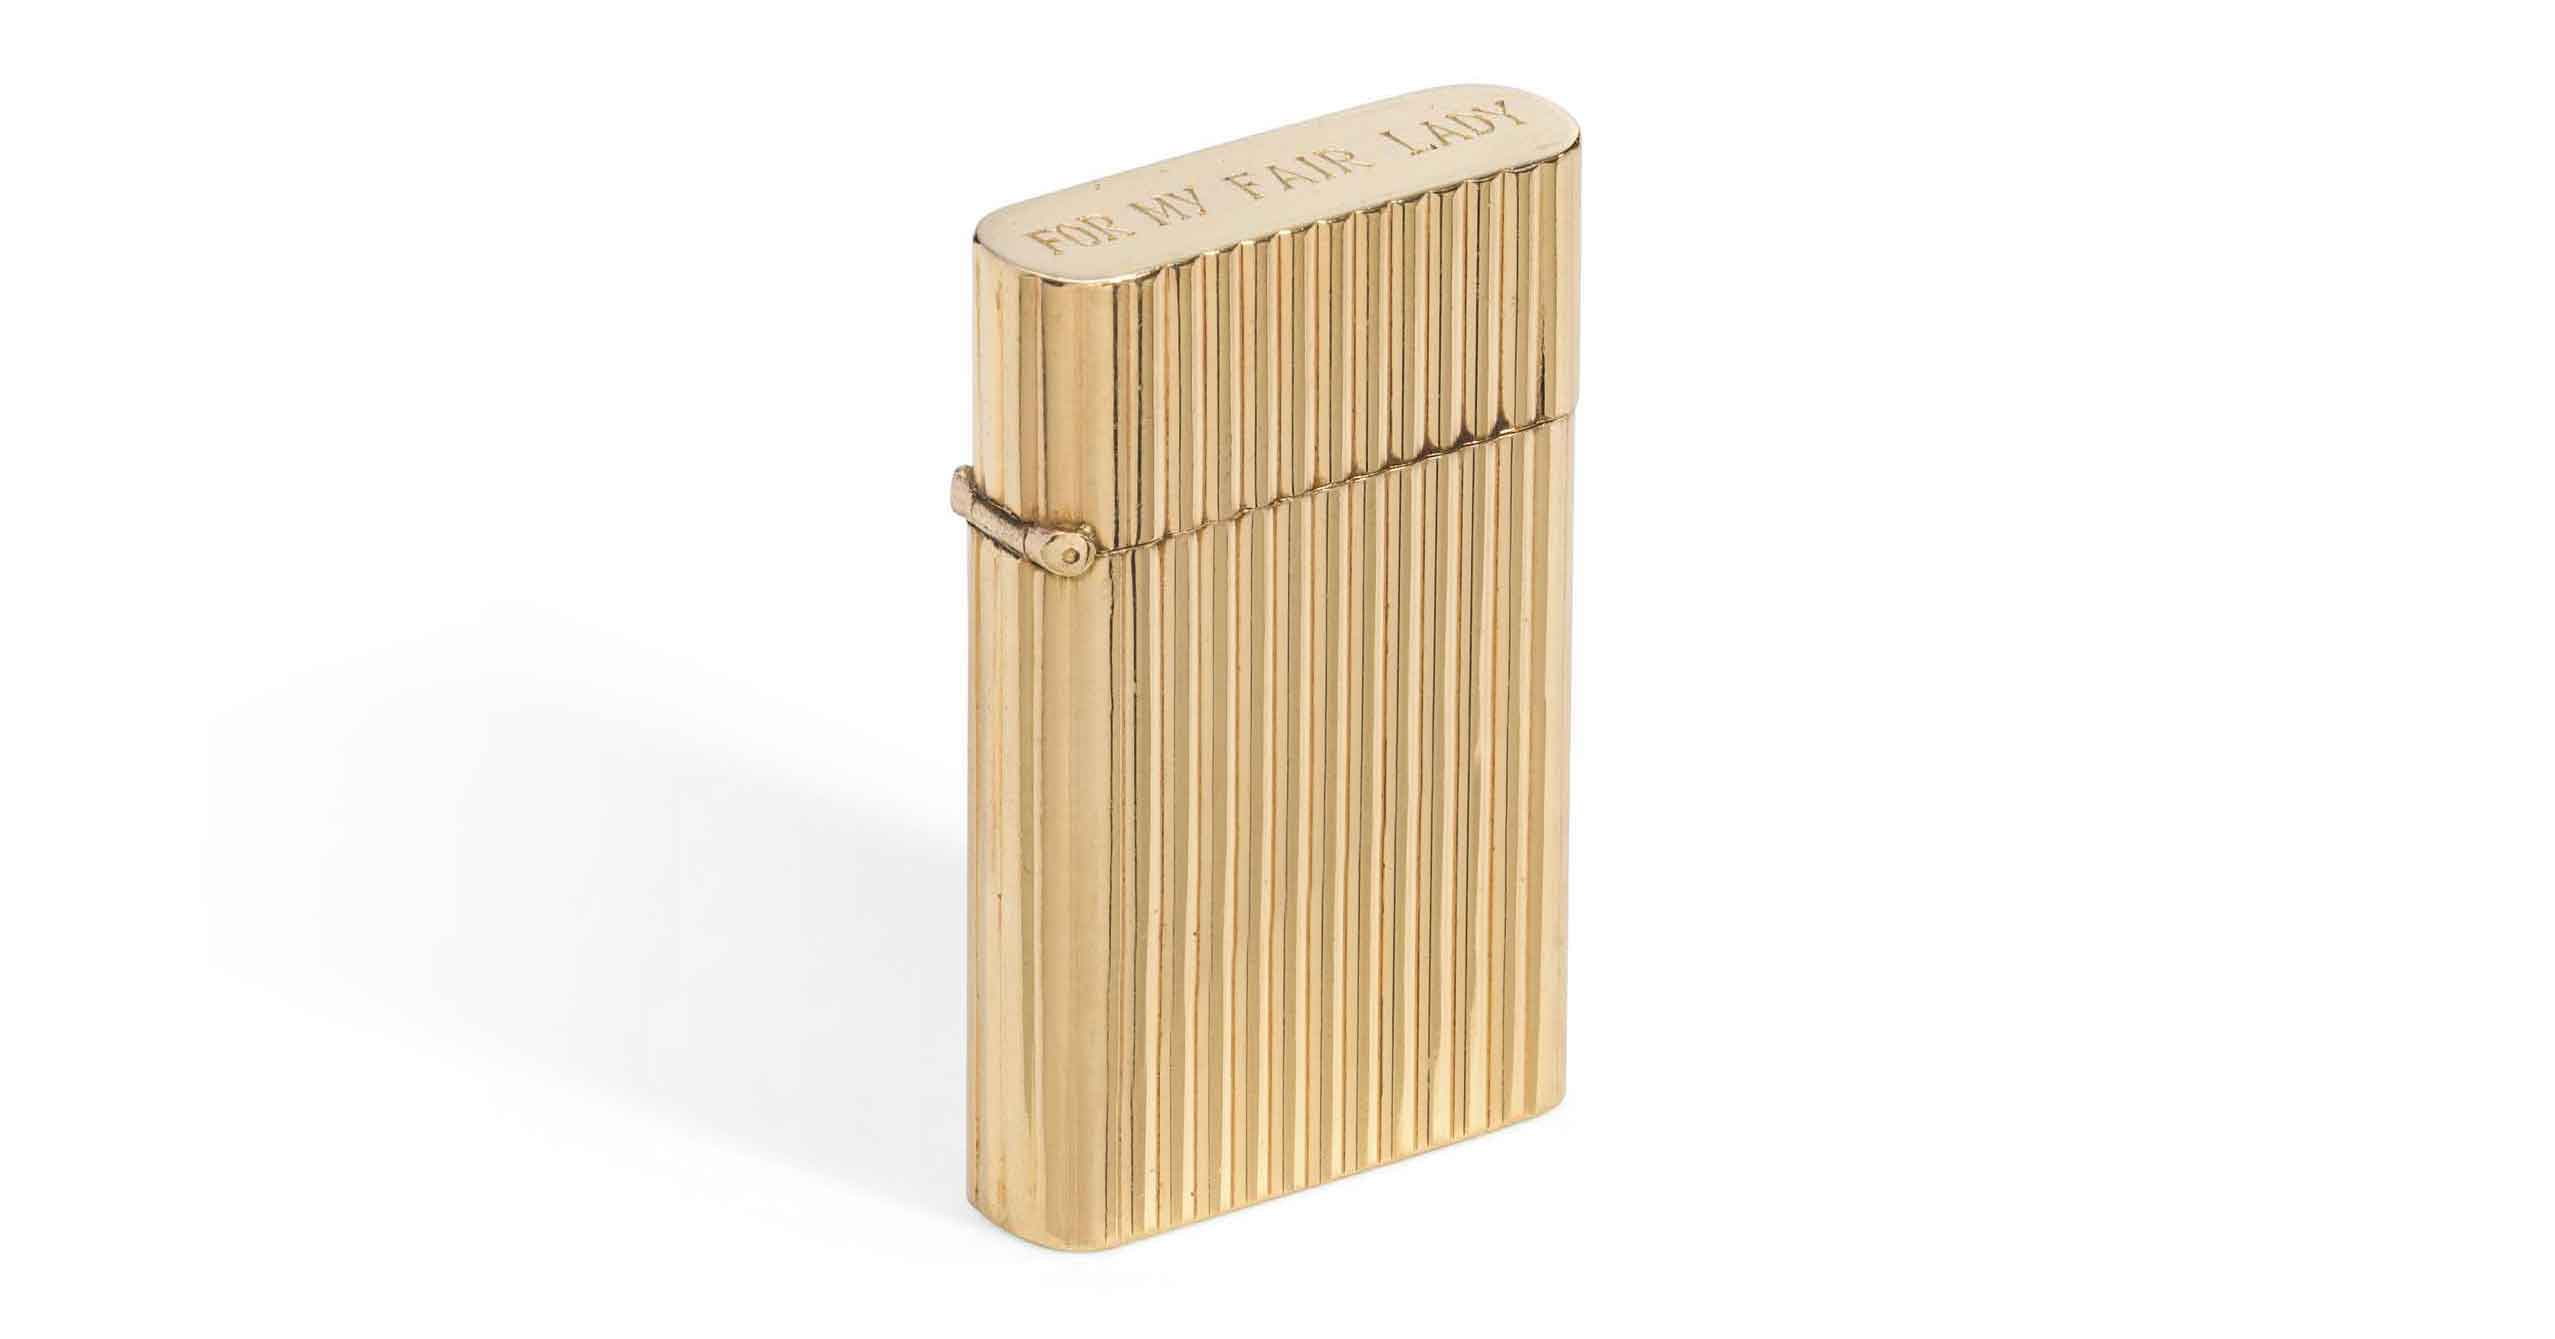 <b>MY FAIR LADY, 1964/GENE ALLEN</br>A CIGARETTE LIGHTER</b></br> Of shaped rectangular form with reeded decoration, the lid with presentation inscription FOR MY FAIR LADY the base engraved GENE ALLEN December 1963</br>2 in. (5 cm.) long</br> Estimate: £3,000-5,000